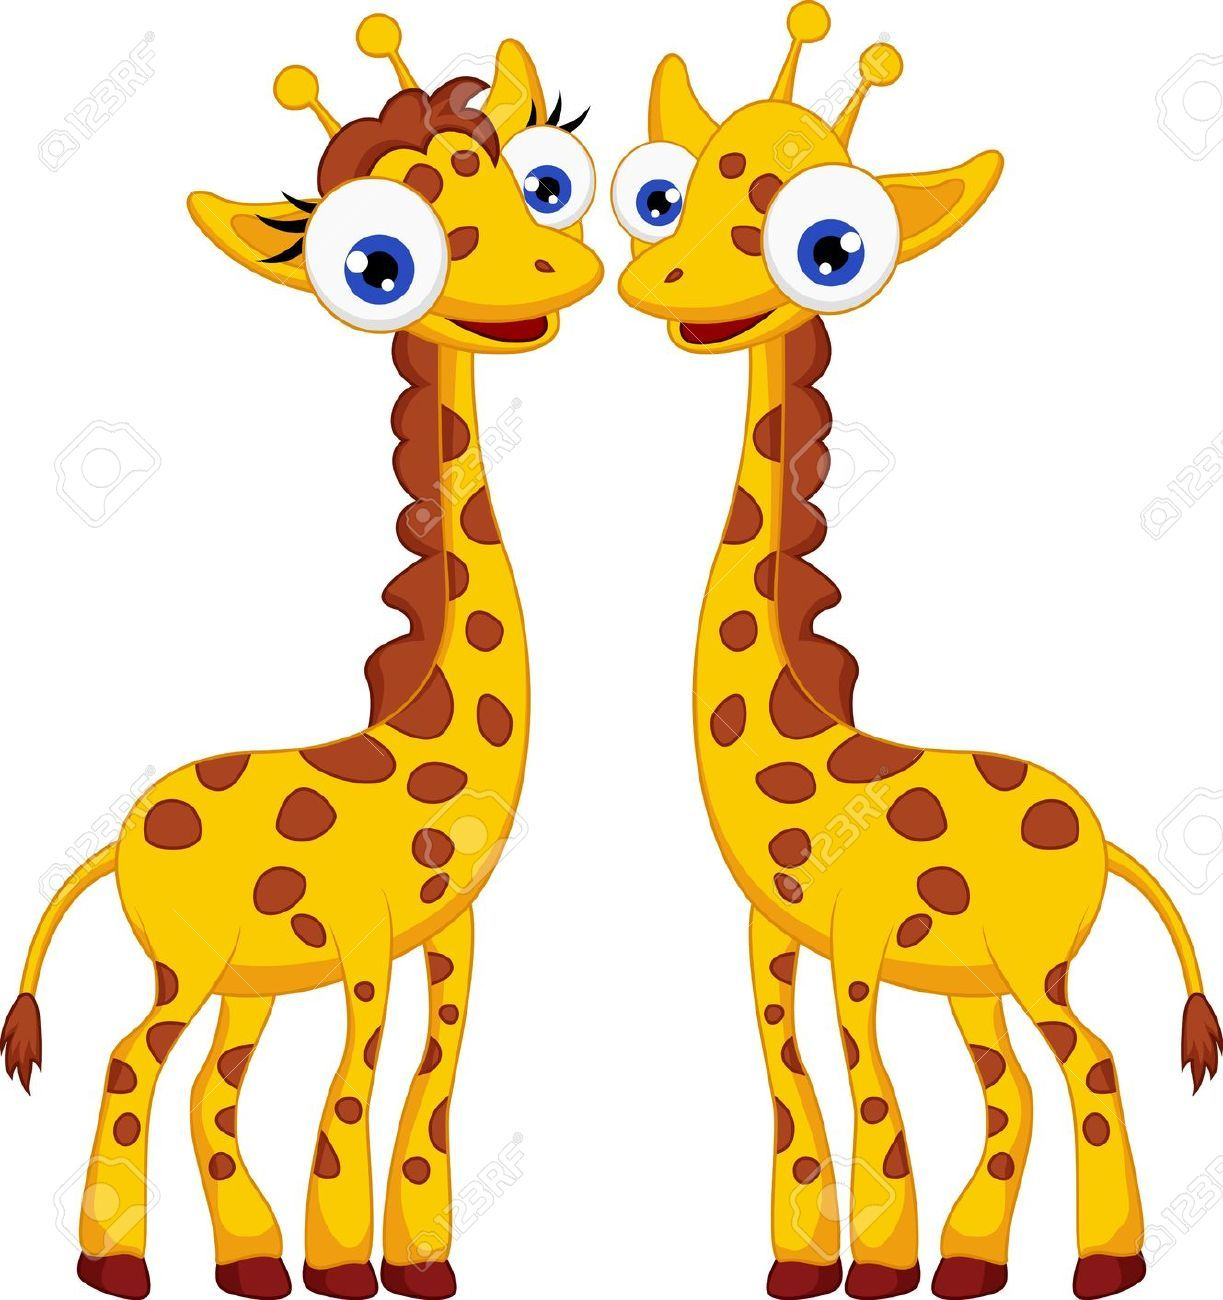 giraffe stock vector illustration and royalty free giraffe clipart [ 1223 x 1300 Pixel ]